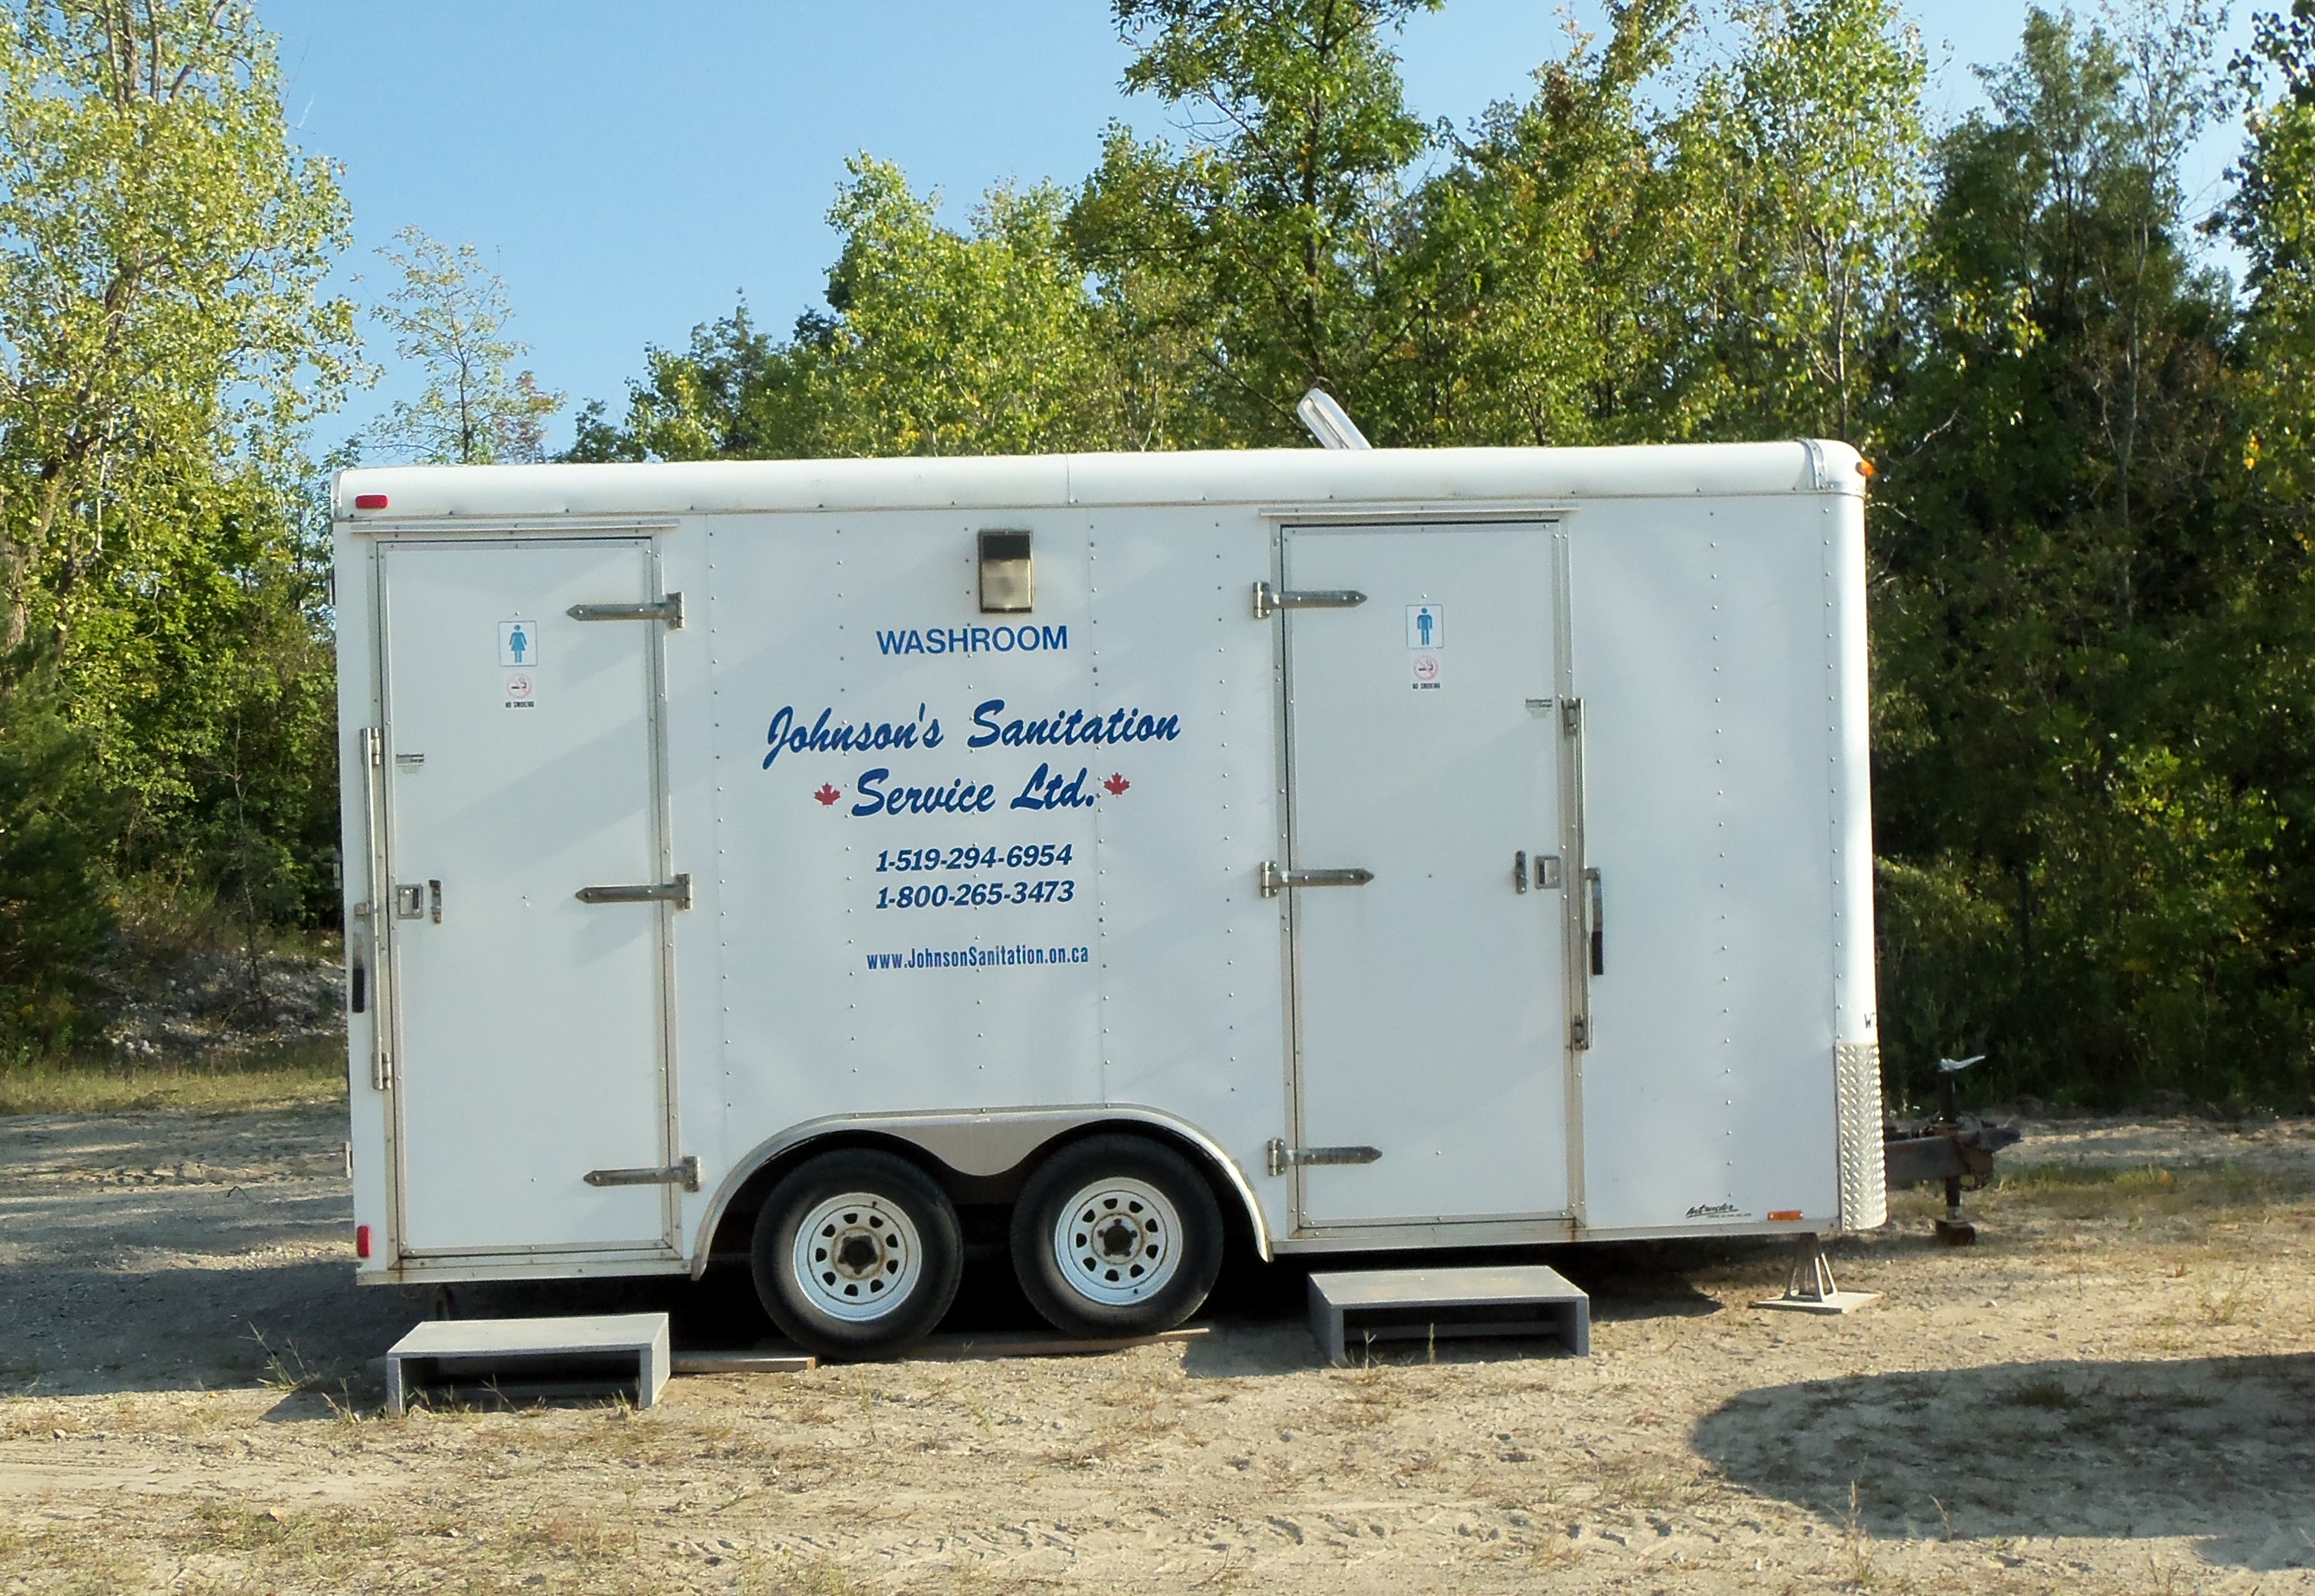 portable sink, portable toilet, hand wash stand, sink, toilet rentals, hand sanitize stand, washroom trailer, toilets, washroom rentals, special events